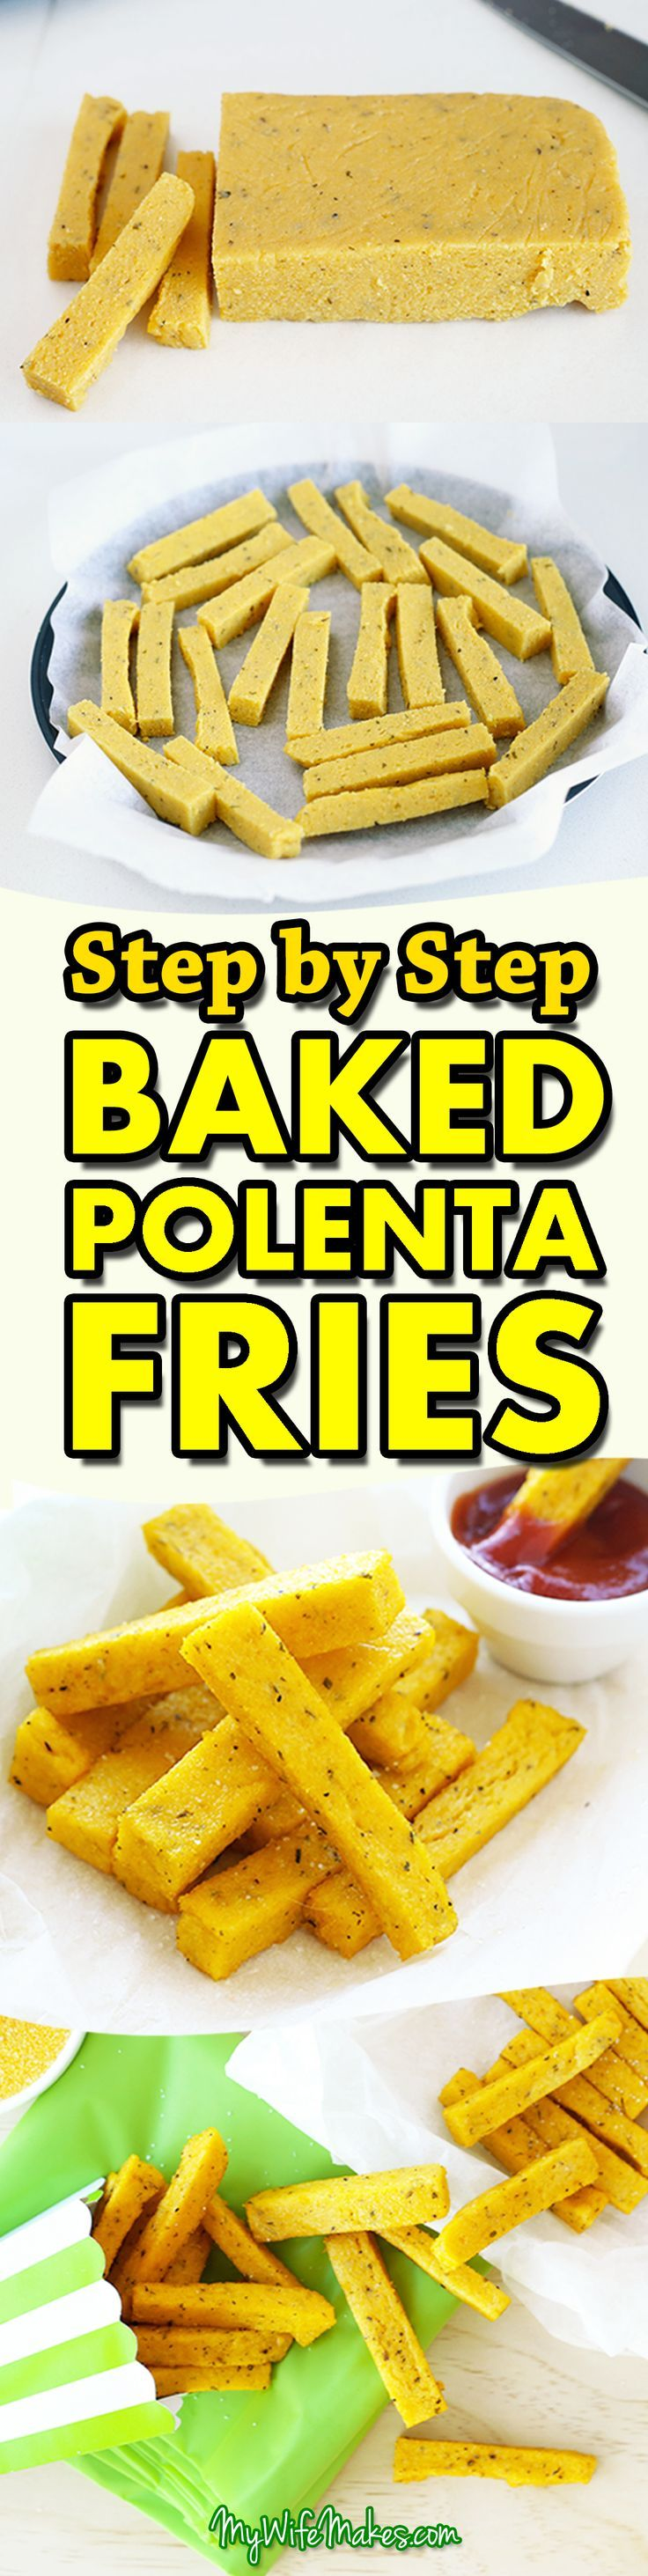 Easy Baked Polenta Fries / Chips